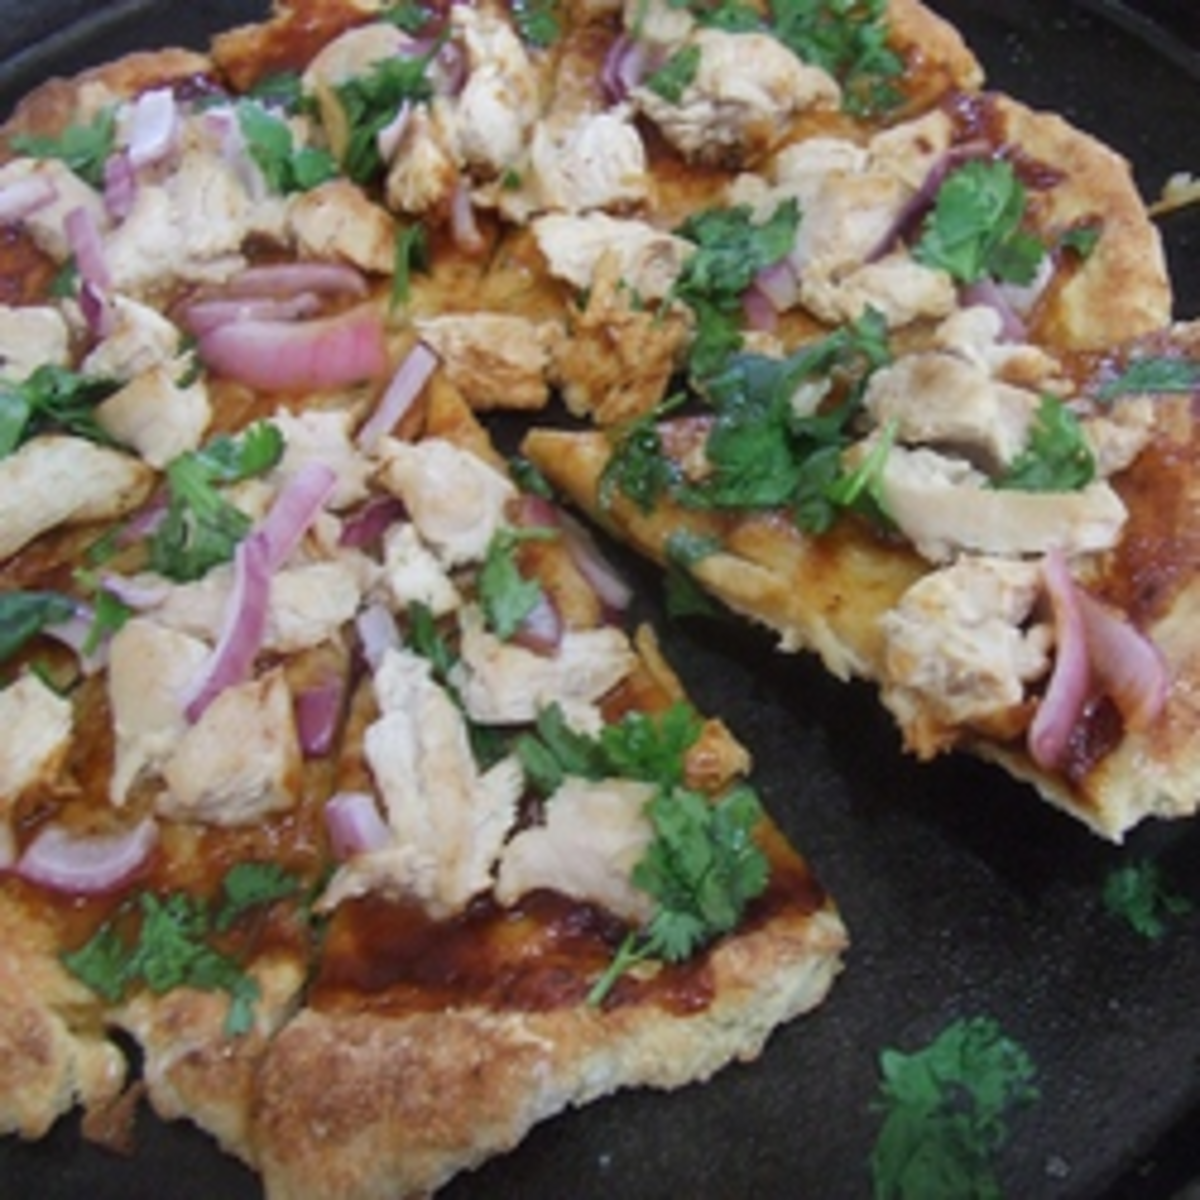 Cheeseless Pizza Recipes - 15 Mouthwatering Topping Ideas